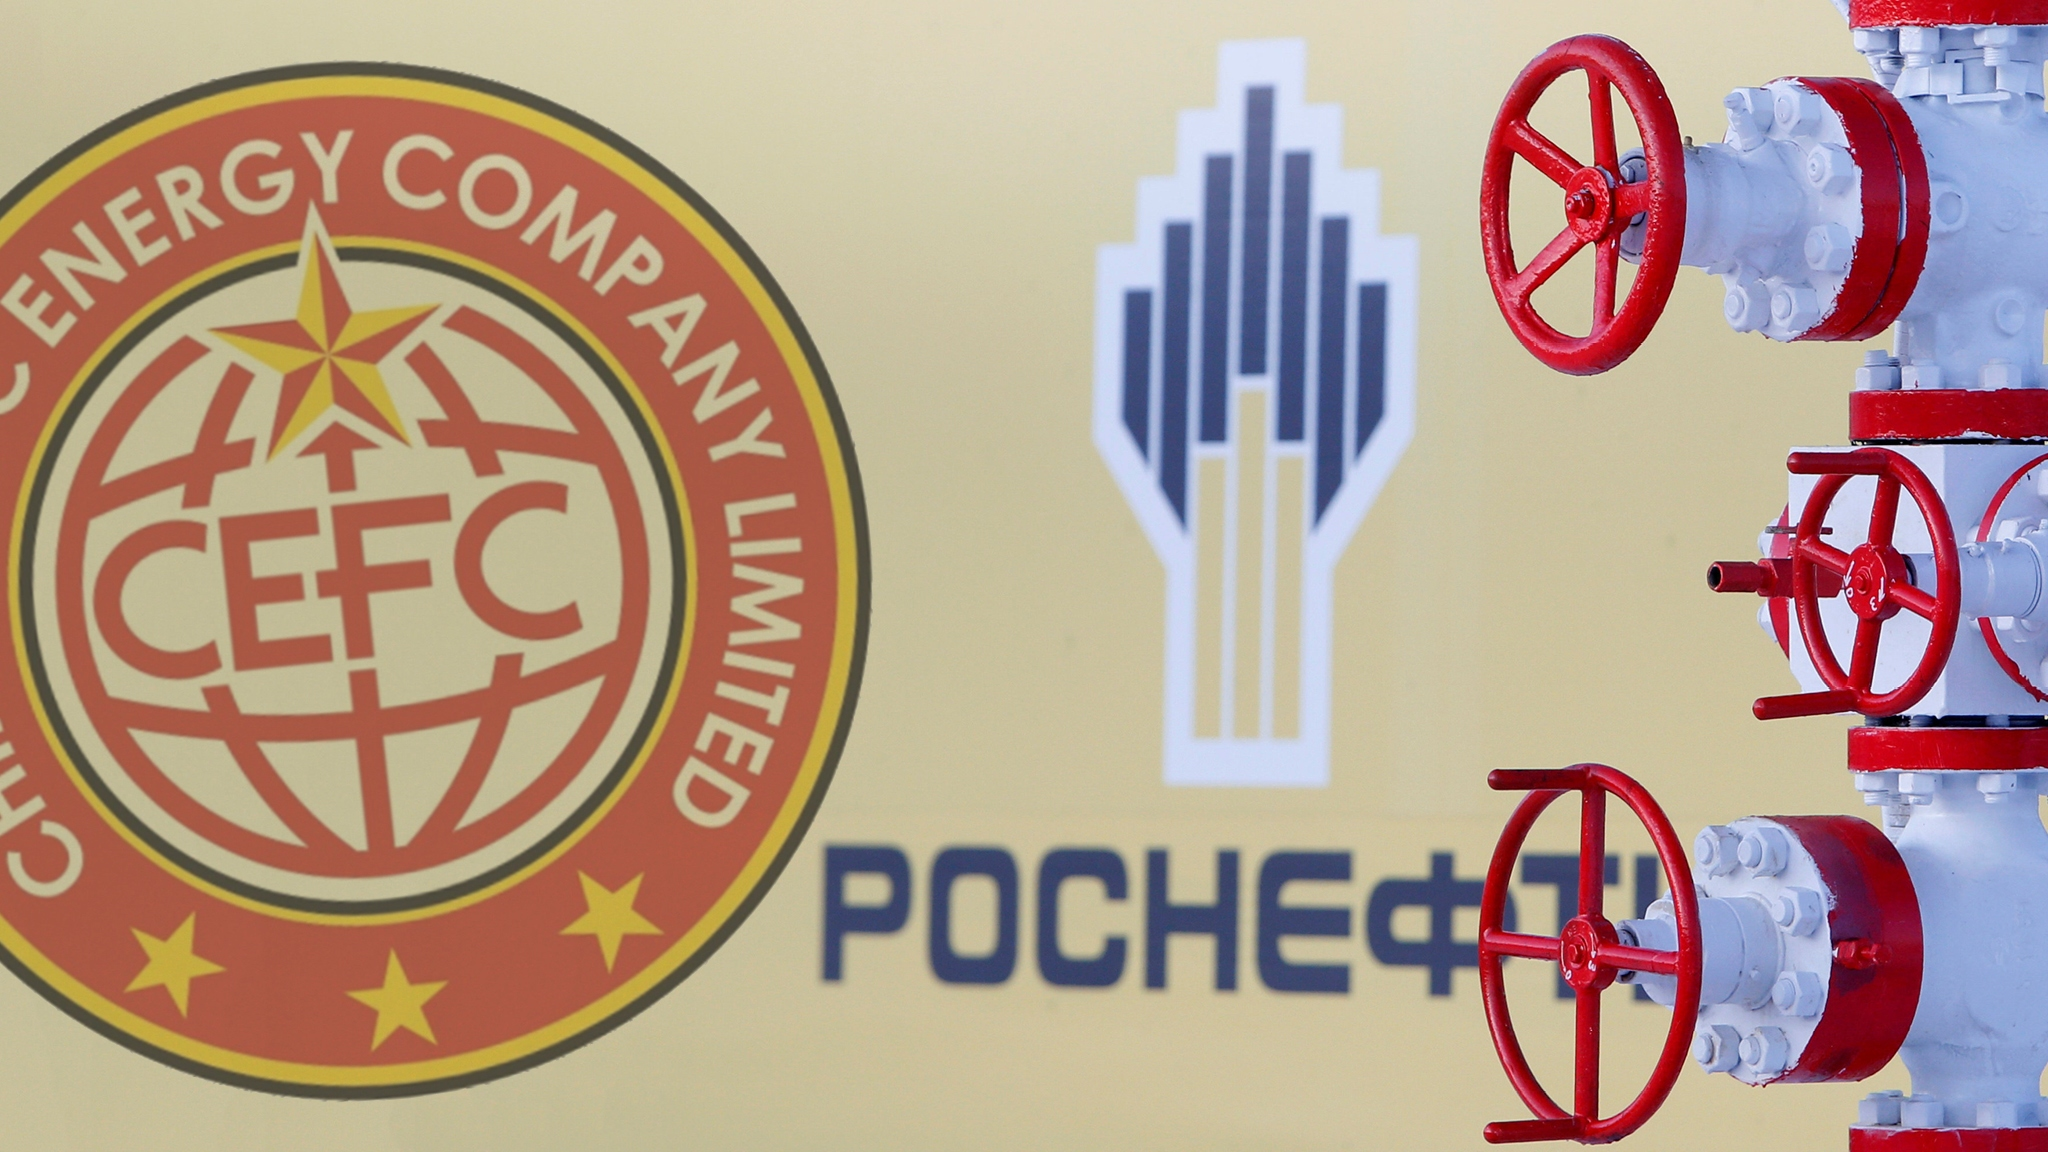 Opaque Chinese Oil Group Makes Clear Gains In Former Soviet Bloc Financial Times